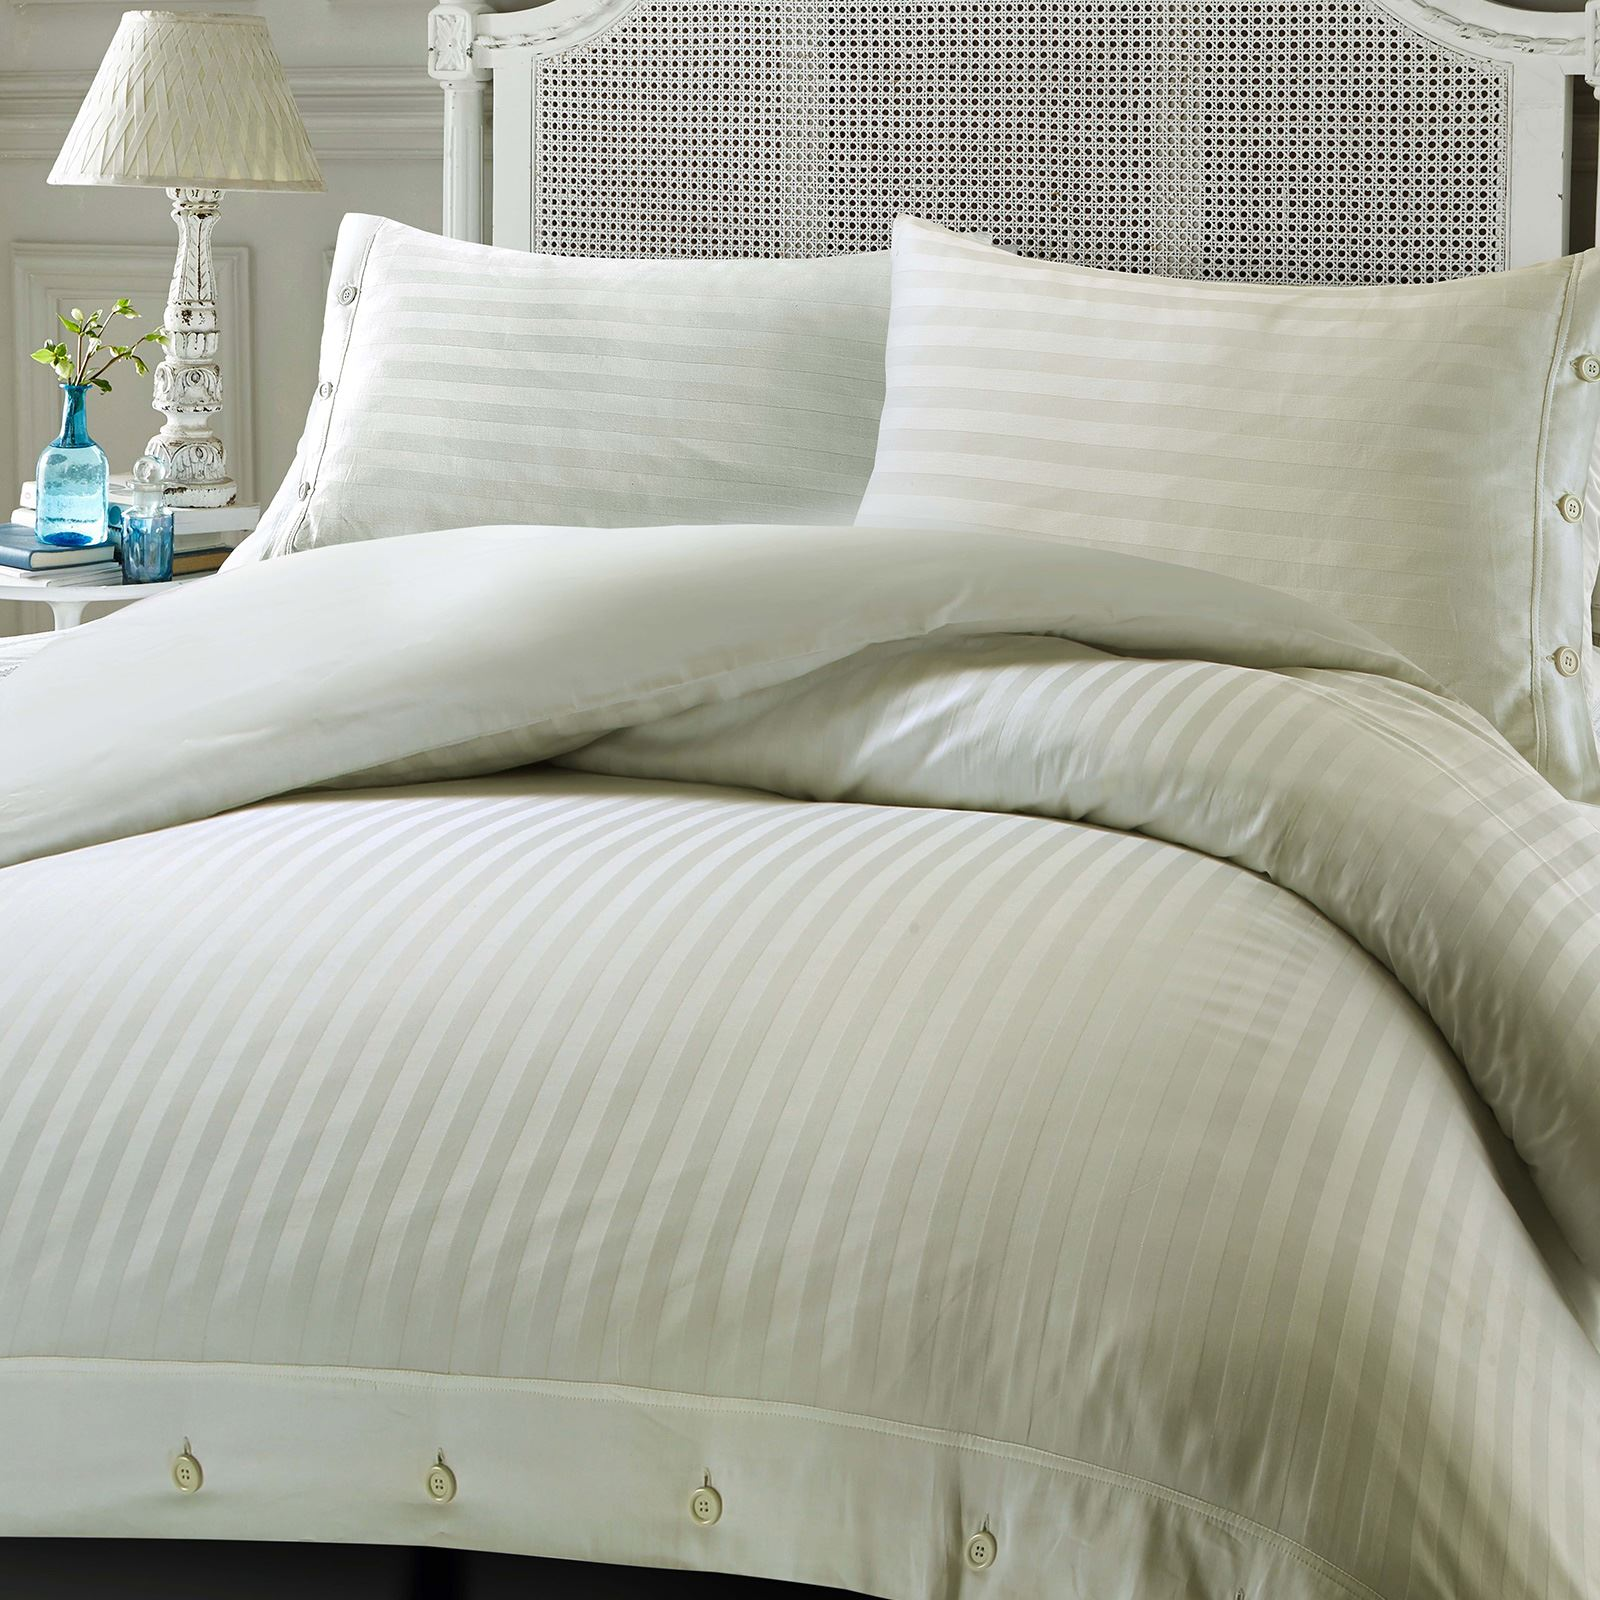 The Kassatex Greek Key Duvet Cover is a truly beautiful bed rendered in premier-quality cotton for exceptional softness and luxury. Featuring a charcoal Greek Key embroidery framing the crisp white ground, the duvet will brighten any space.